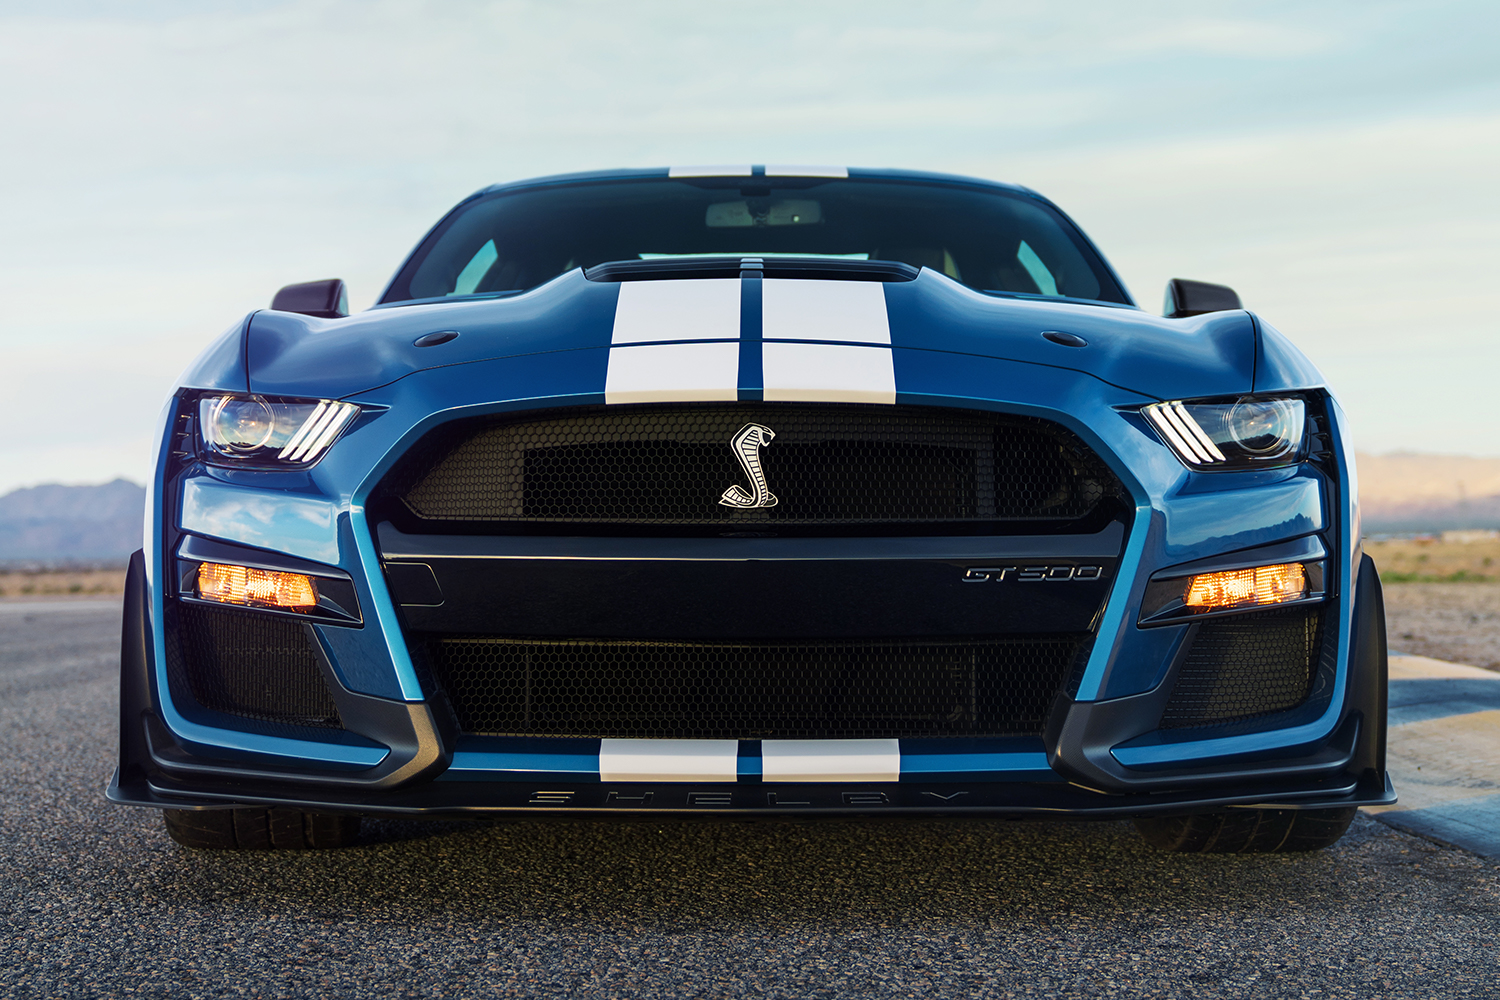 Ford Finally Reveals How Powerful the 2020 Mustang Shelby GT500 Will Be